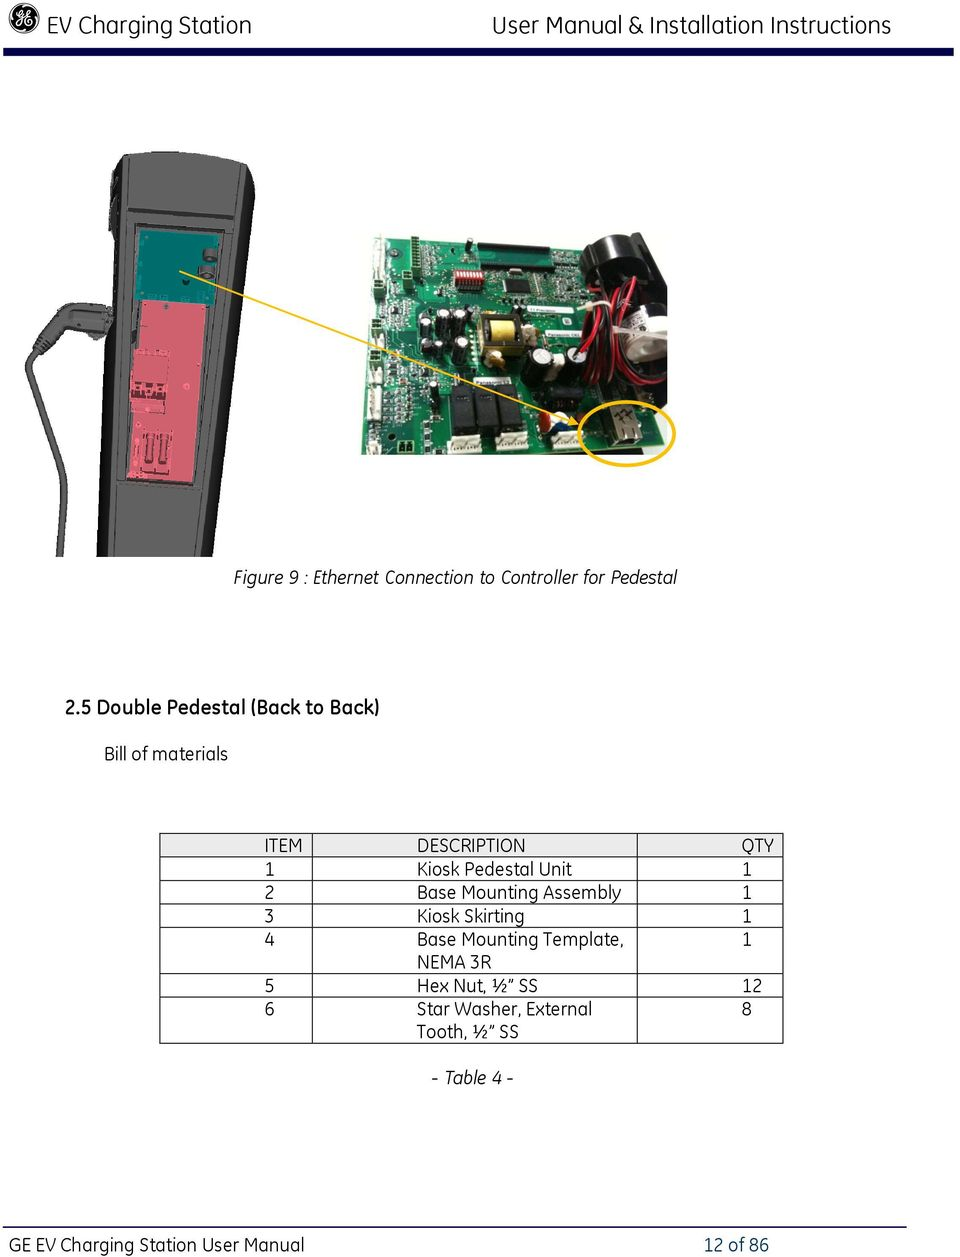 Ge Ev100 Wiring Diagram Schematic Diagrams Ev10 Nema Evse Charging Station User Manual Installation Instructions Pdf Sqd